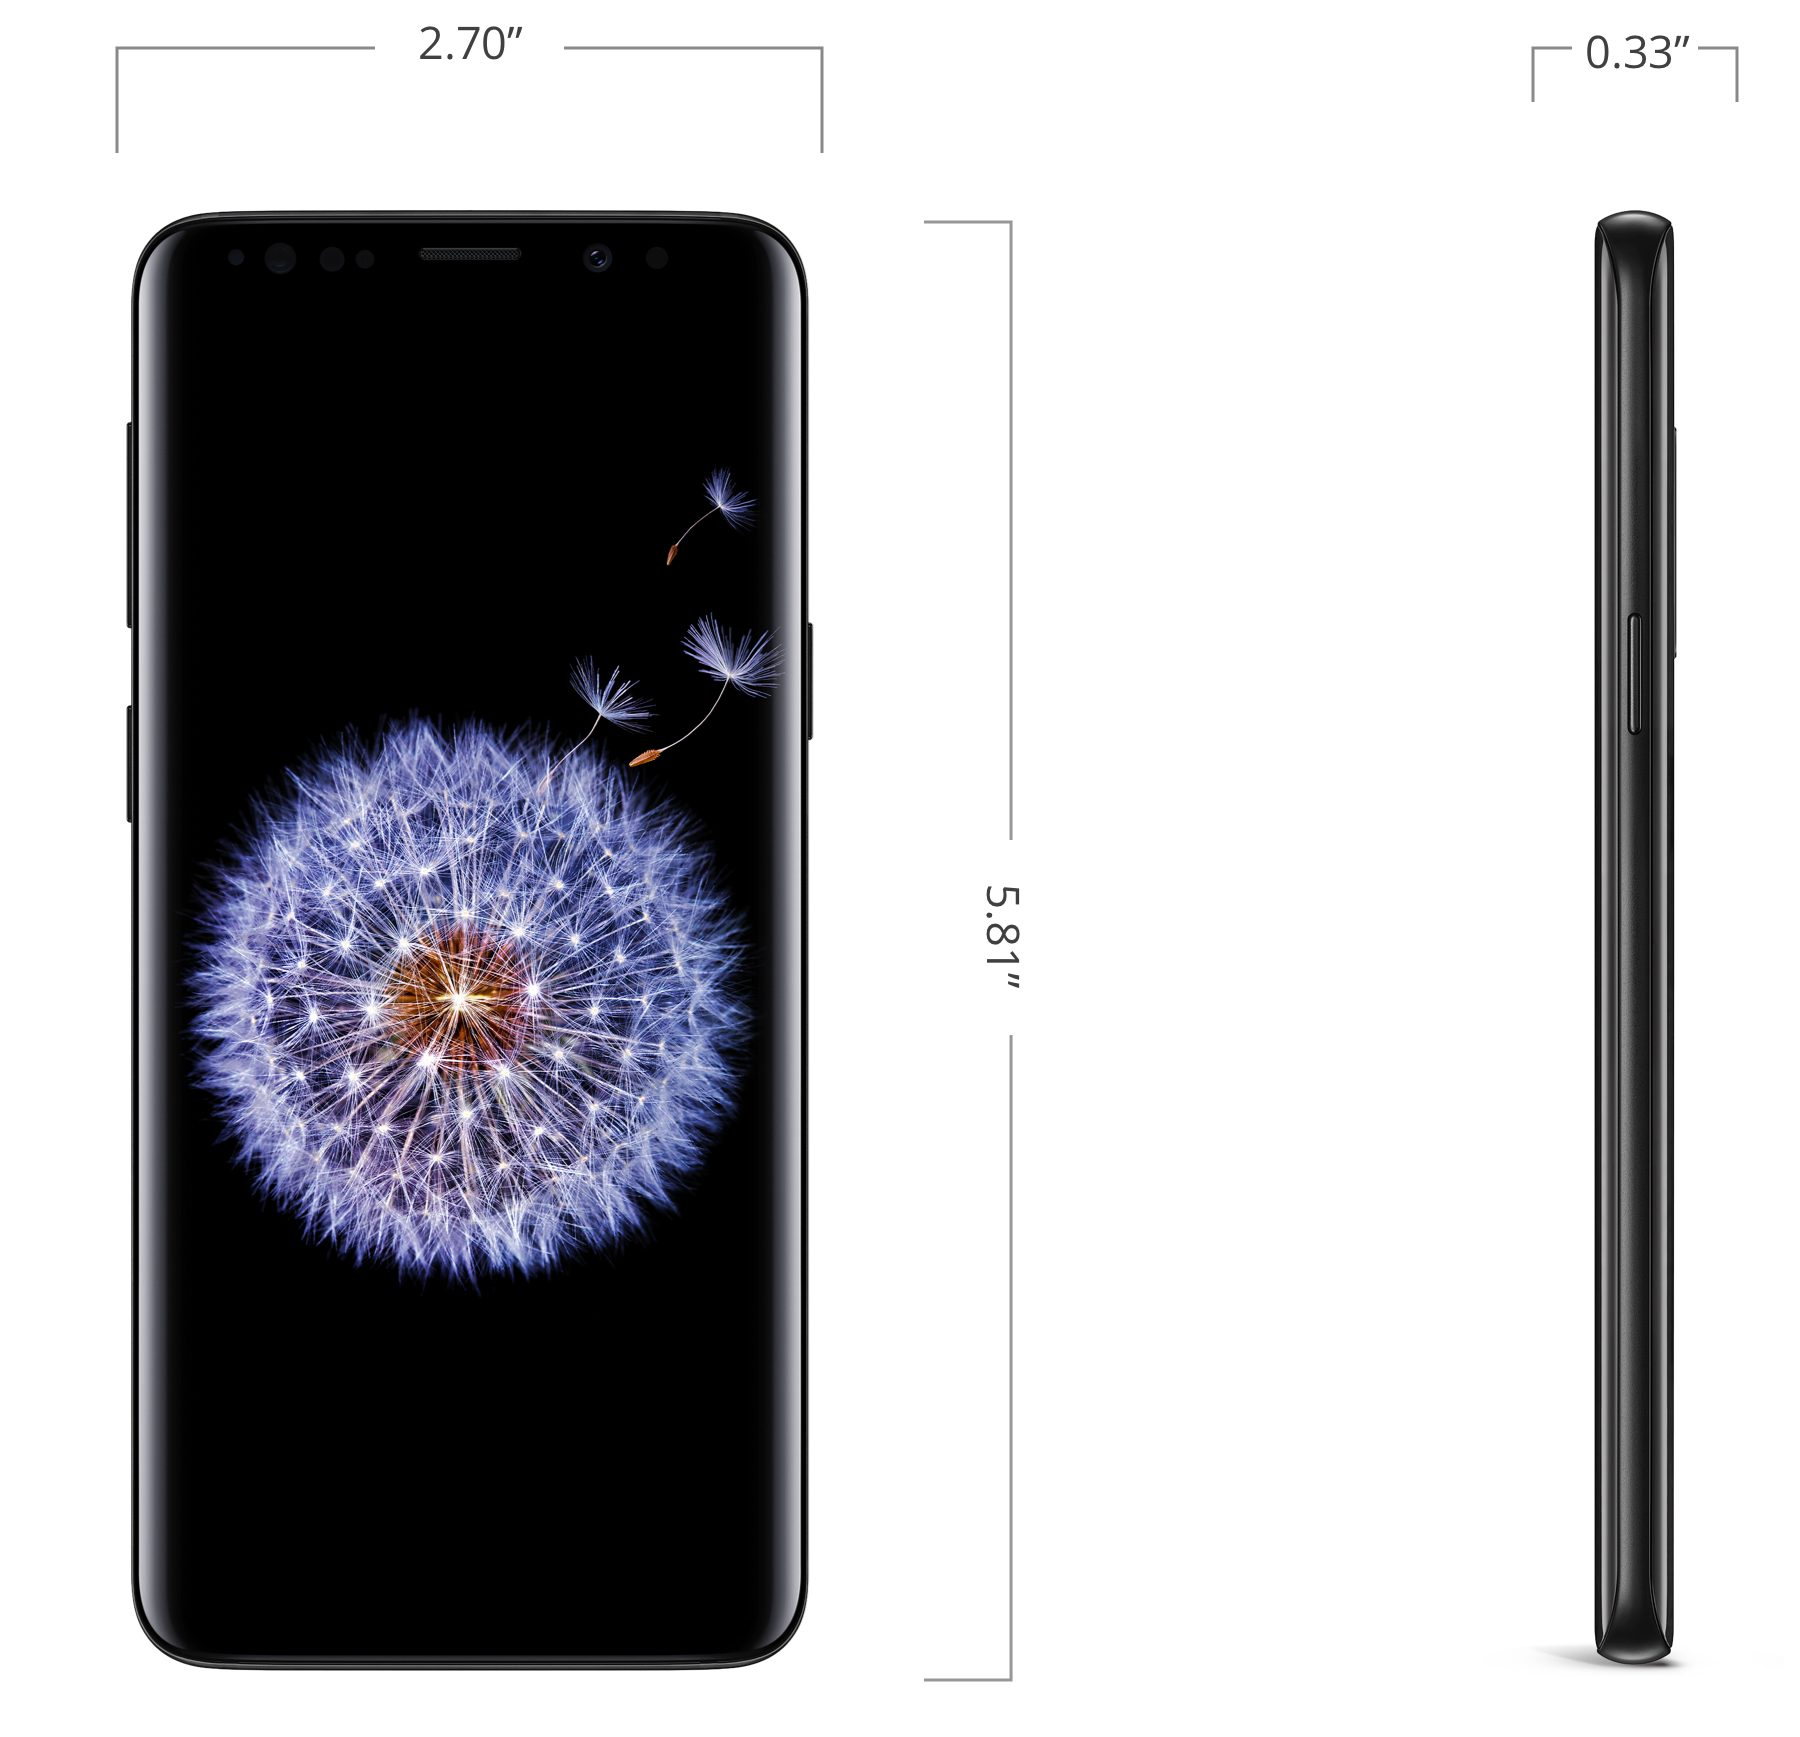 Galaxy S9, 64GB, Black, Boost Mobile